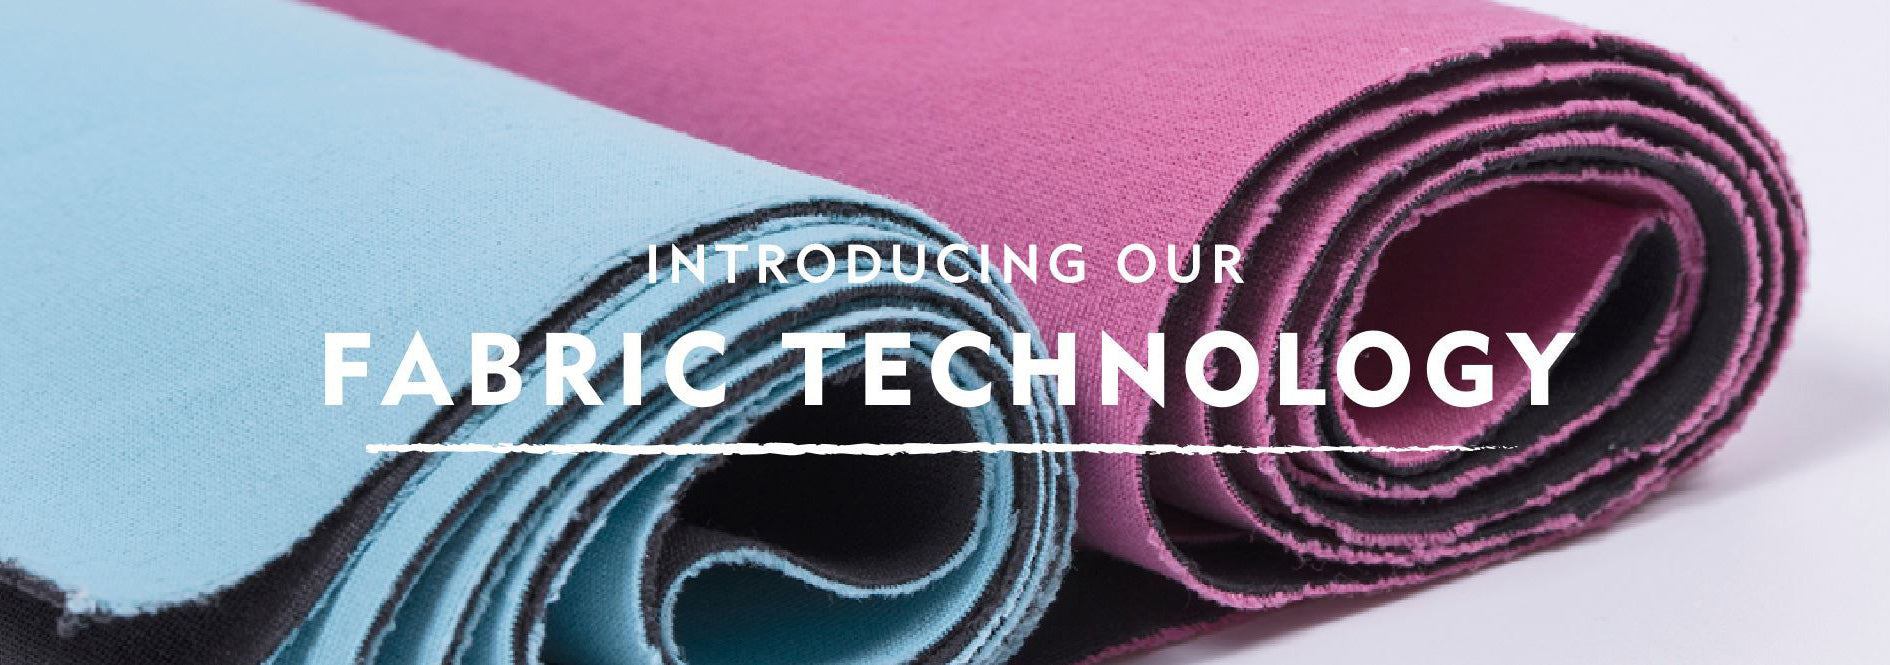 Introducing Our Fabric Technology